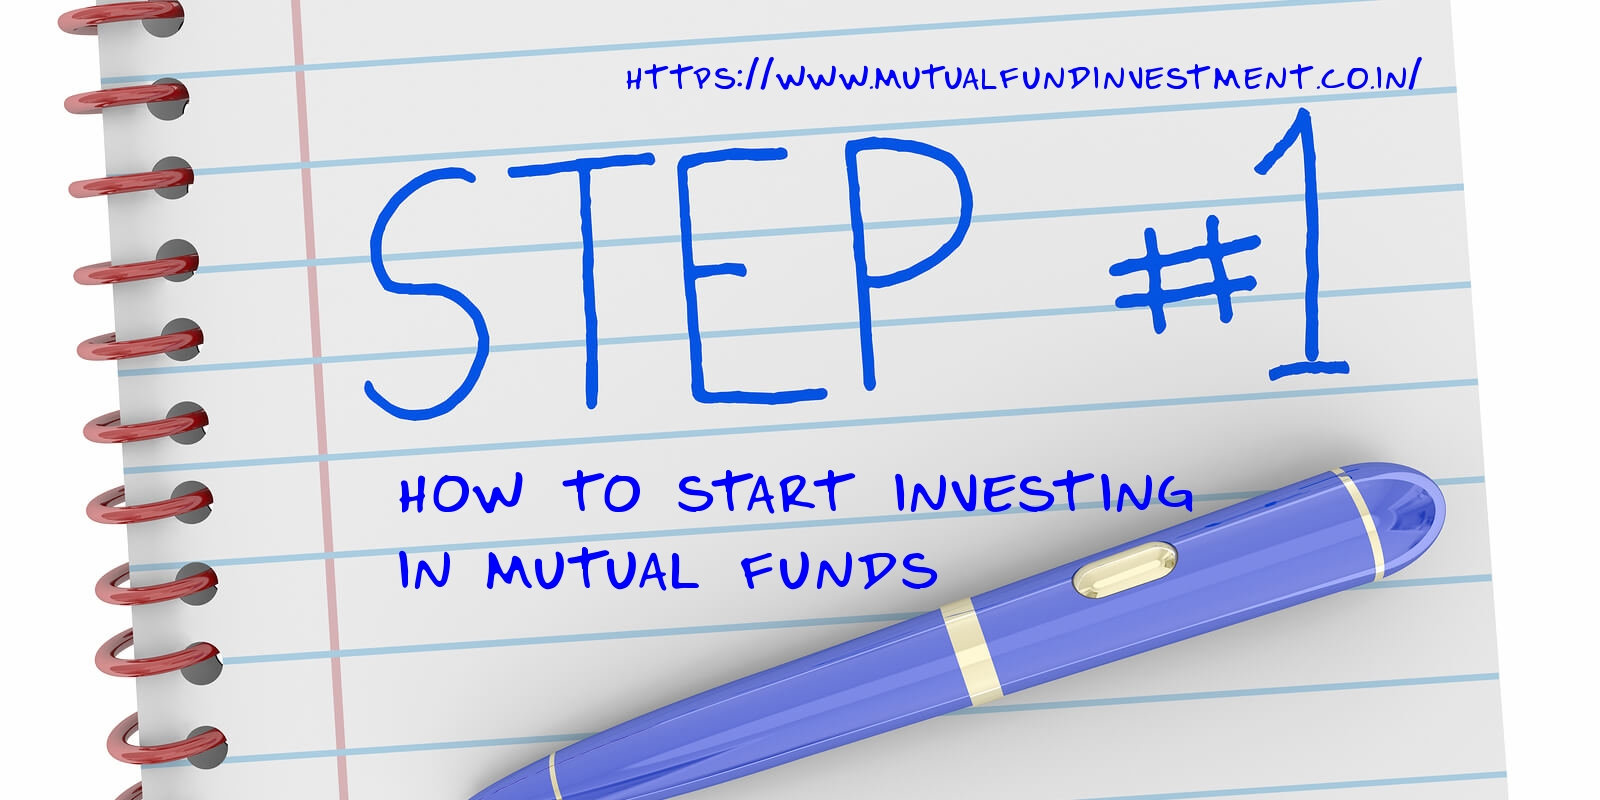 Investing in mutual funds for beginners, how to start investing in mutual funds